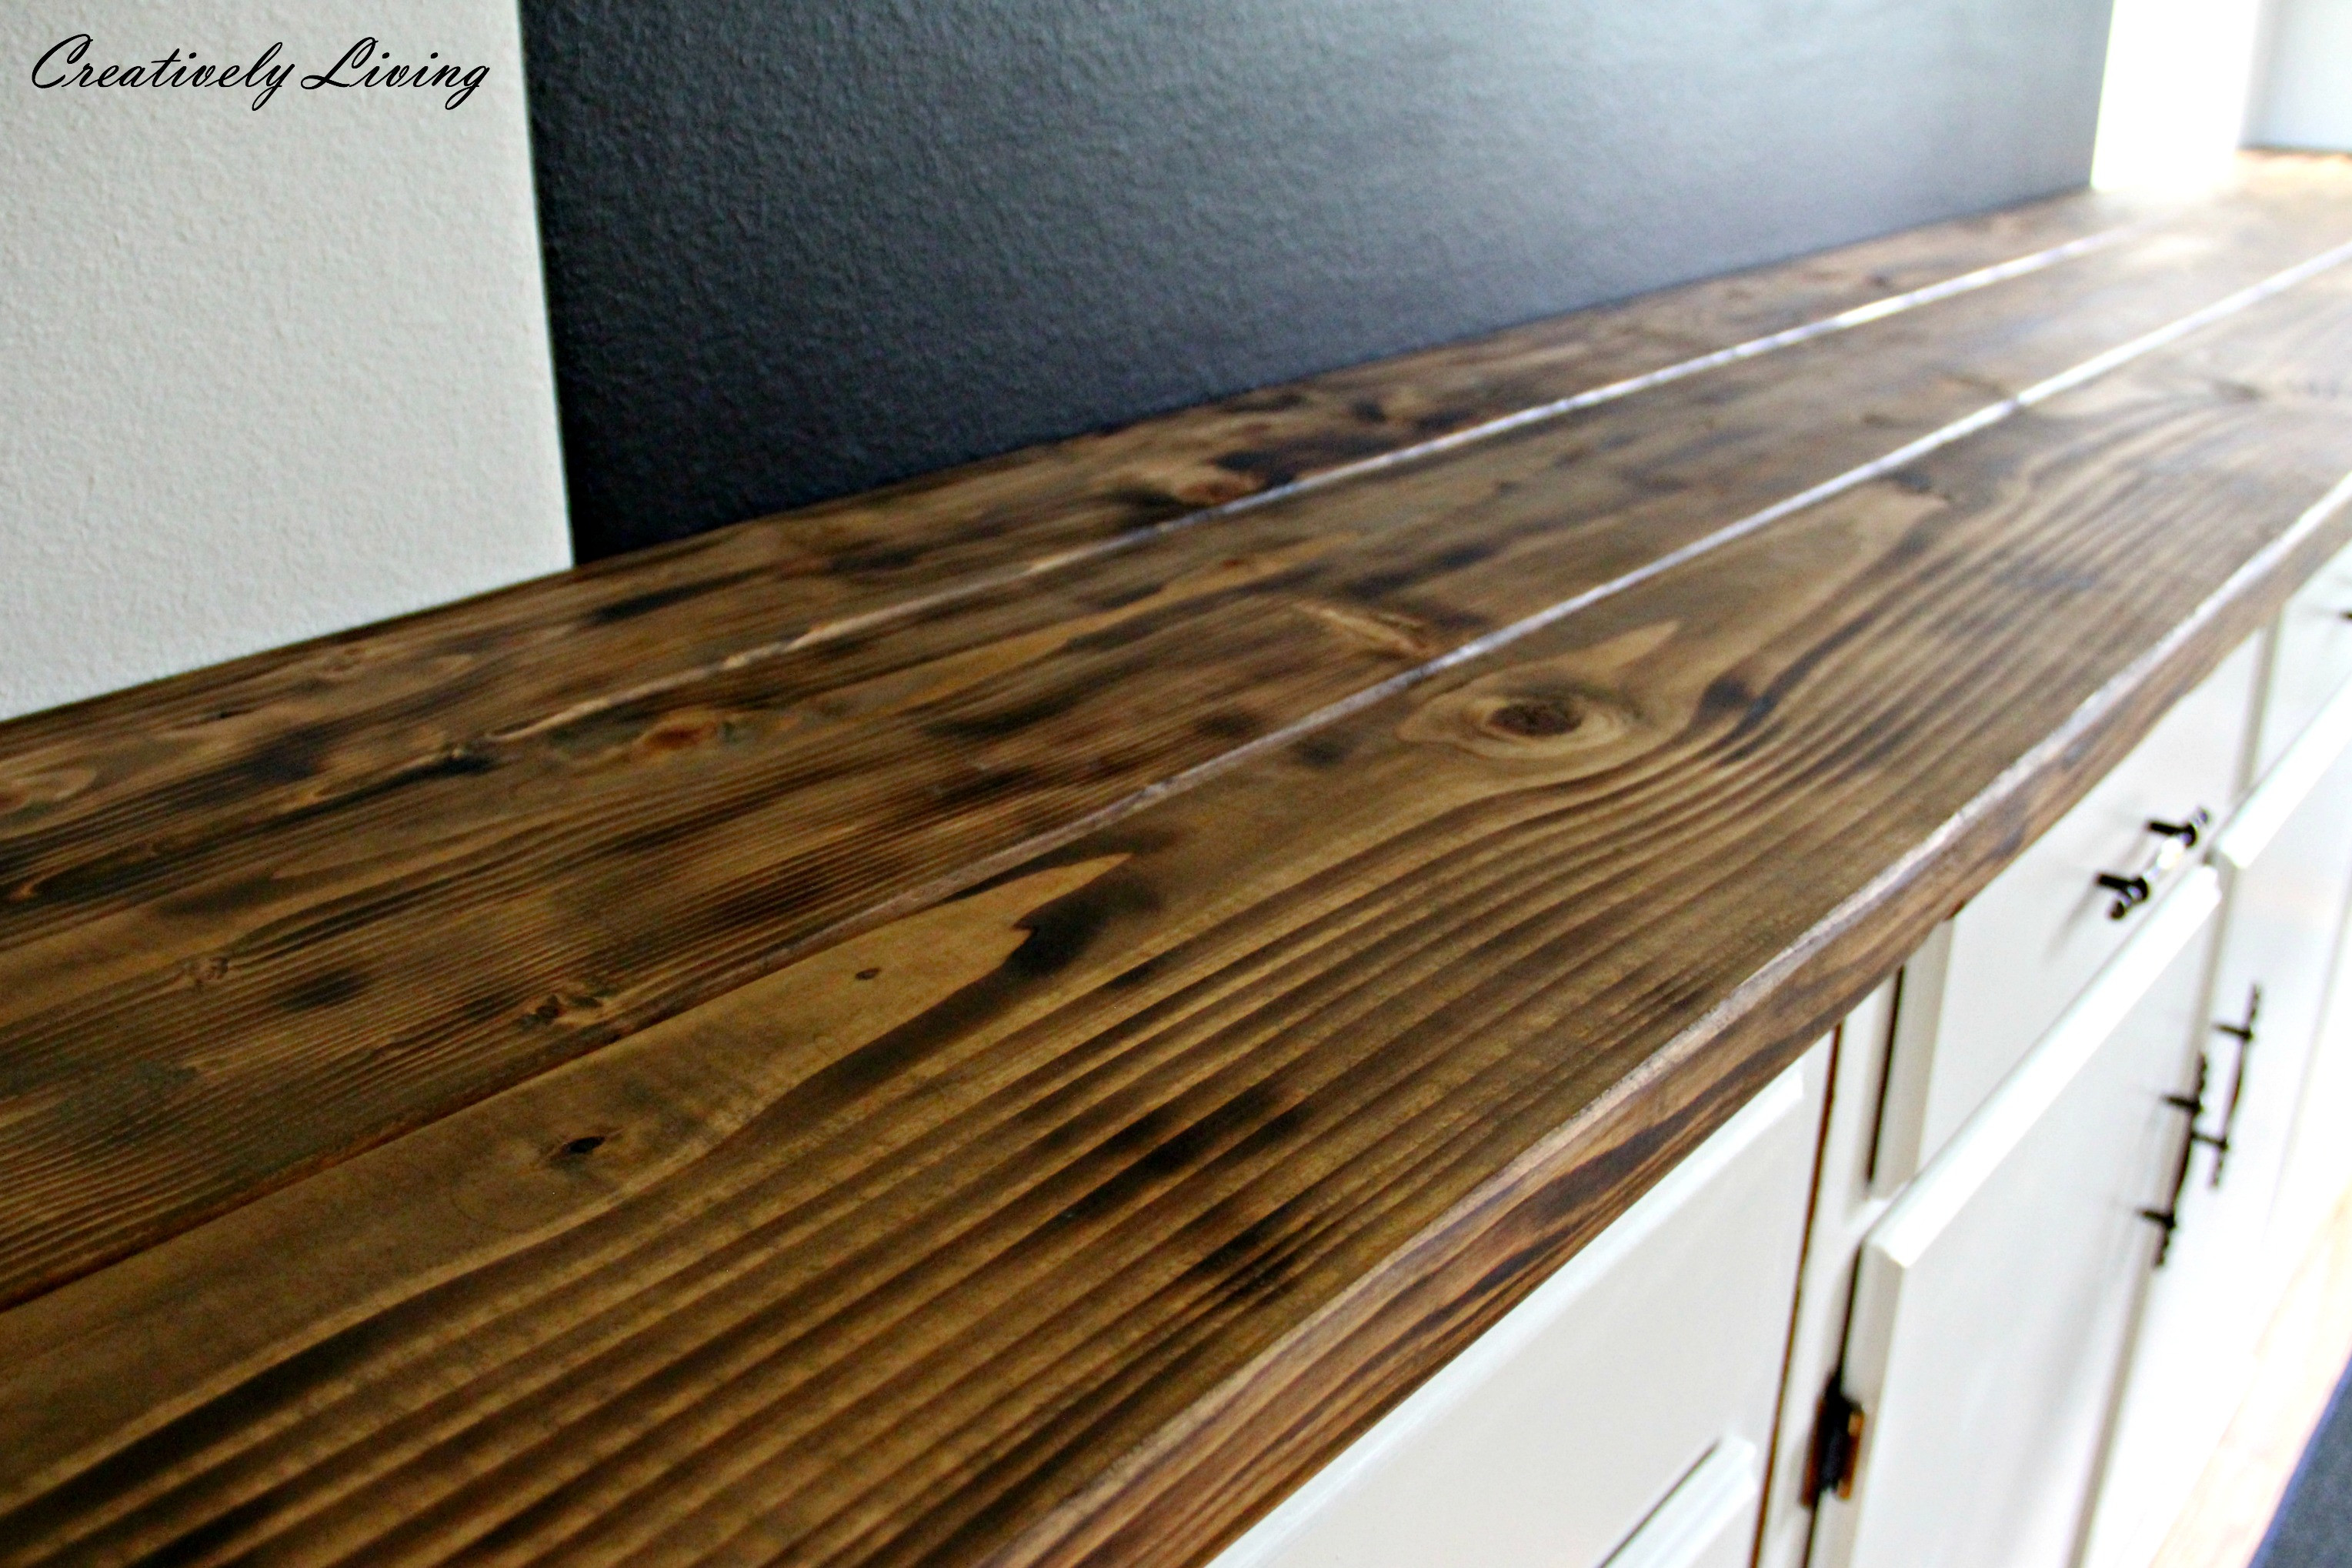 Best ideas about DIY Wood Countertops . Save or Pin Torched DIY Rustic Wood Counter Top for Under $50 by Now.